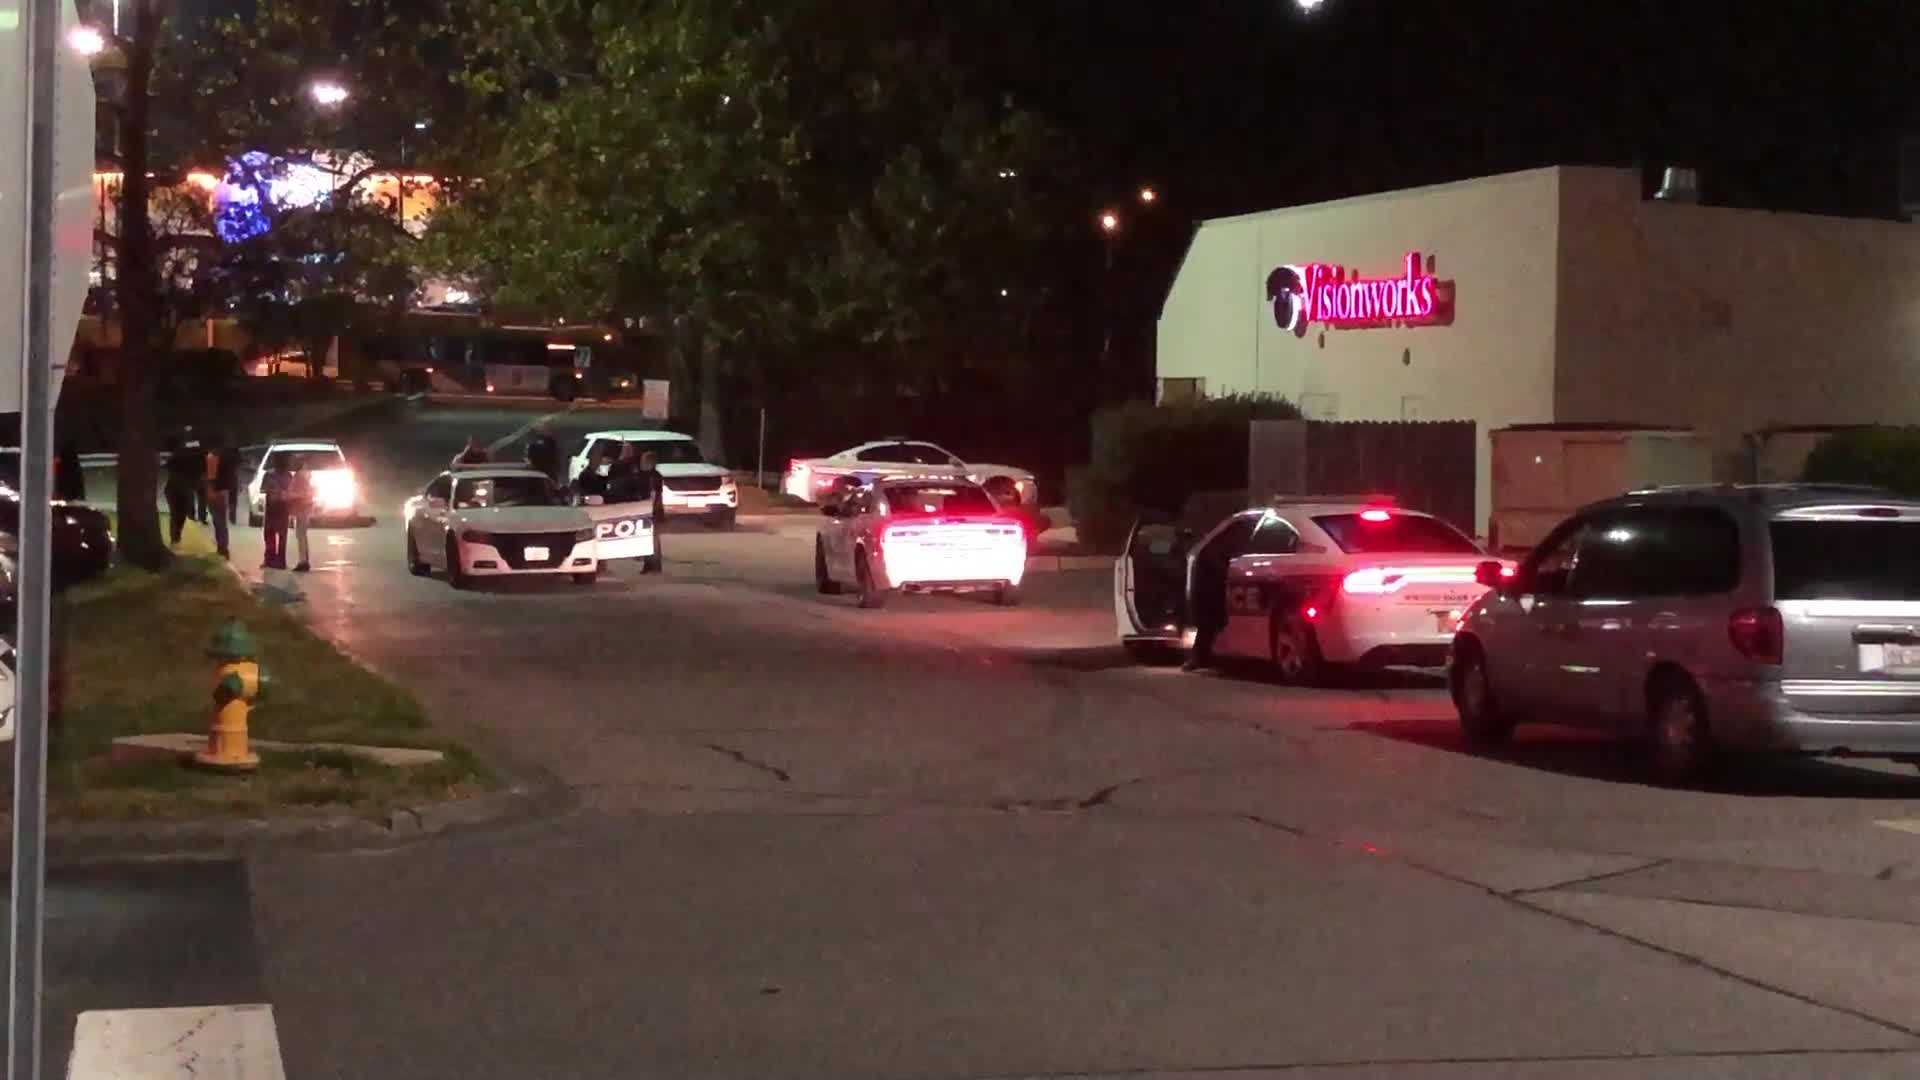 Juvenile shot in face at Hanes Mall, police say; mall is still open